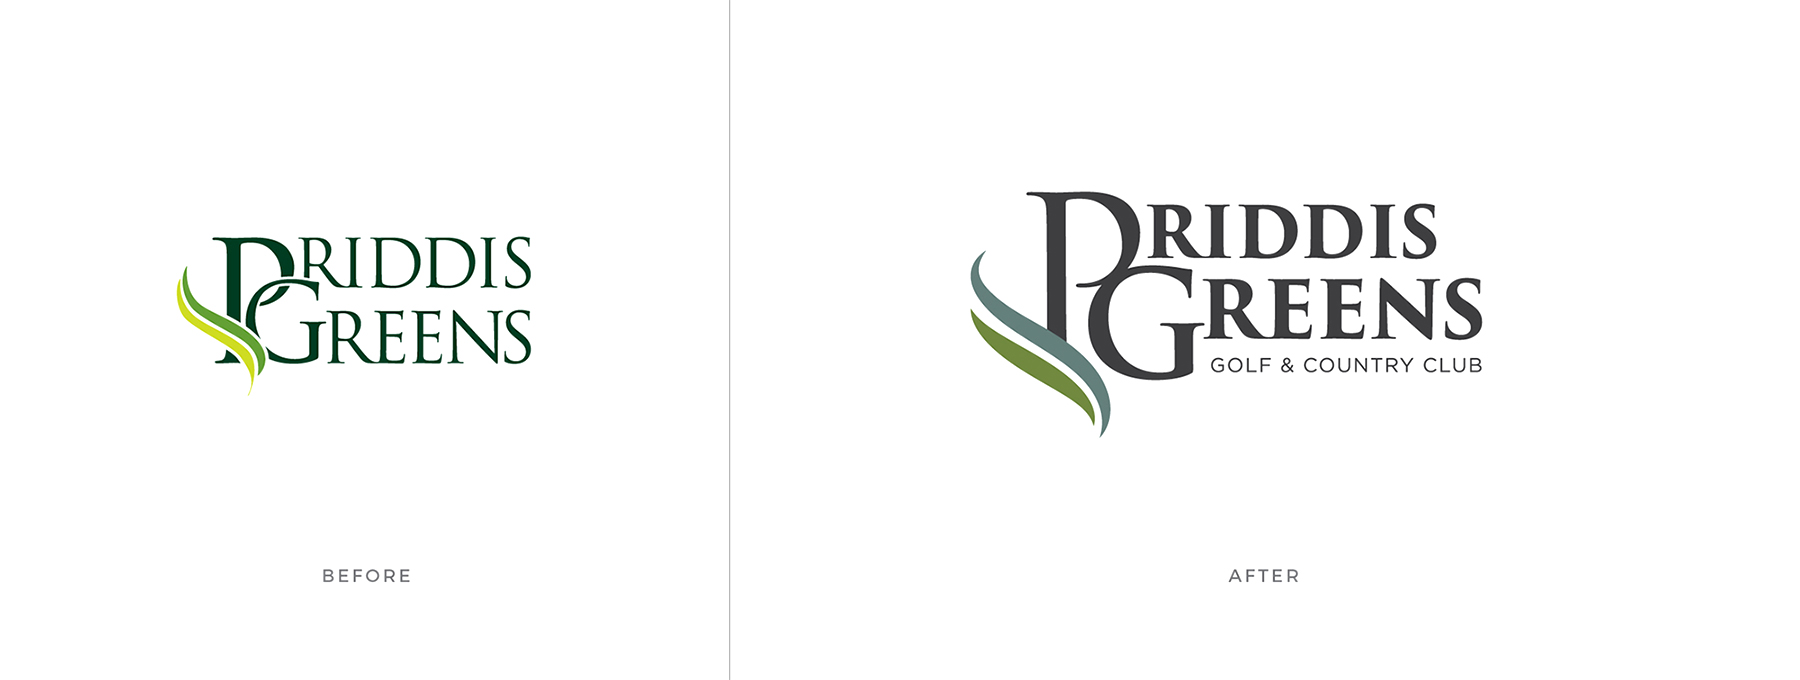 priddis greens logo before and after